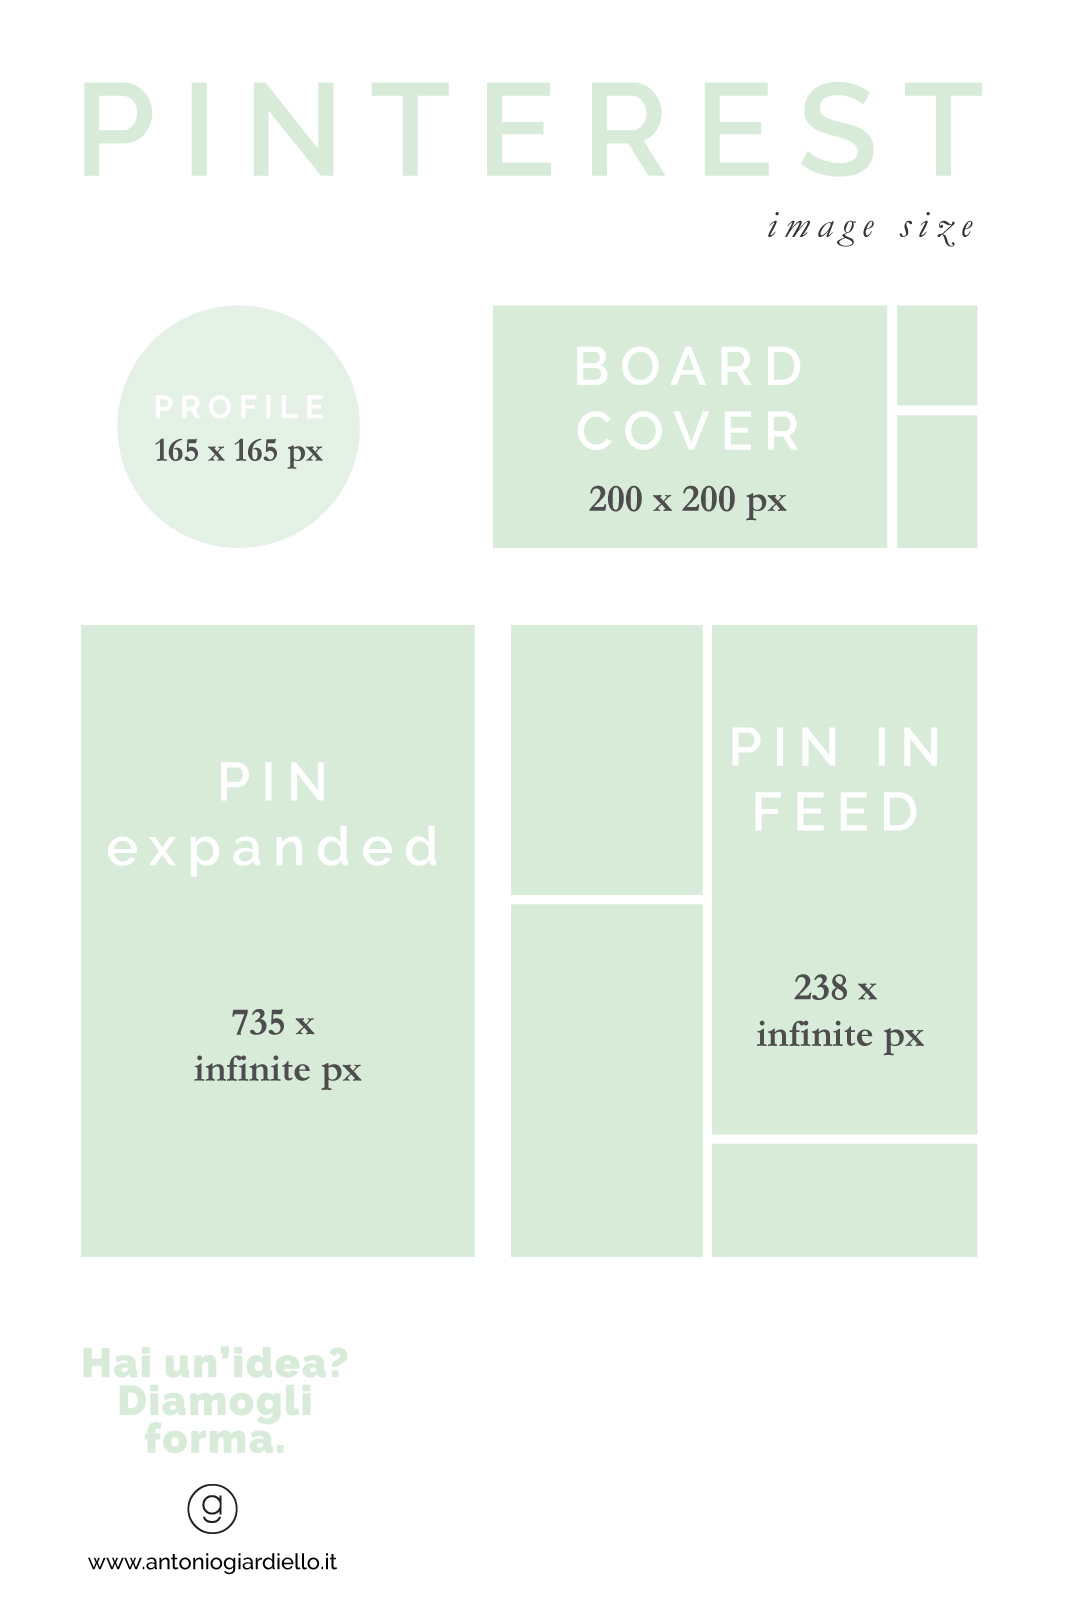 PINTEREST-social-media-image-size-guide.jpg